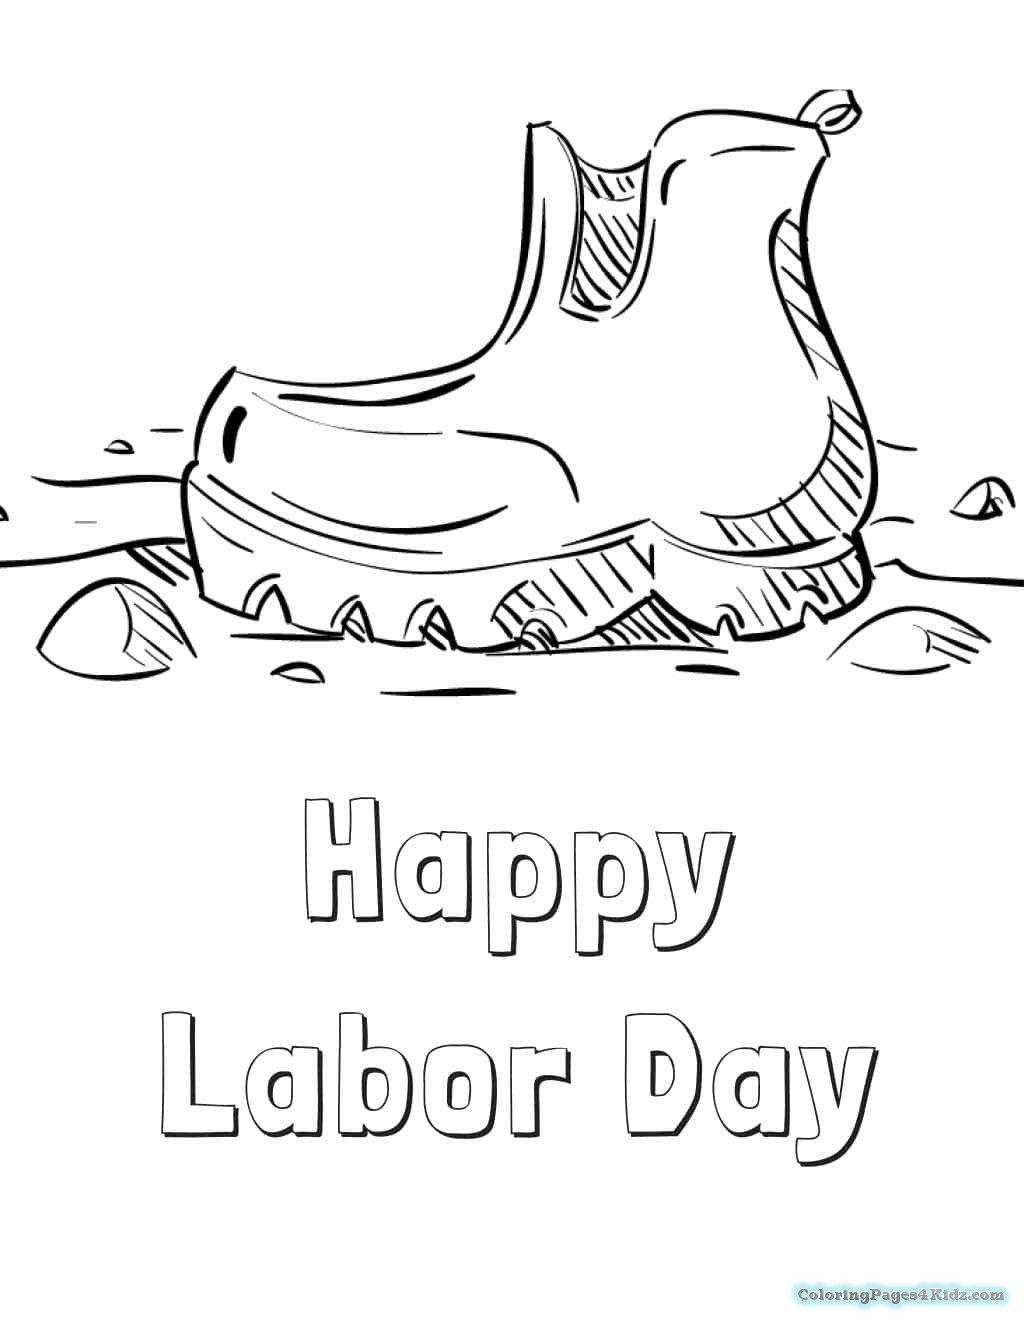 Free Labor Day Coloring Pages Pictures